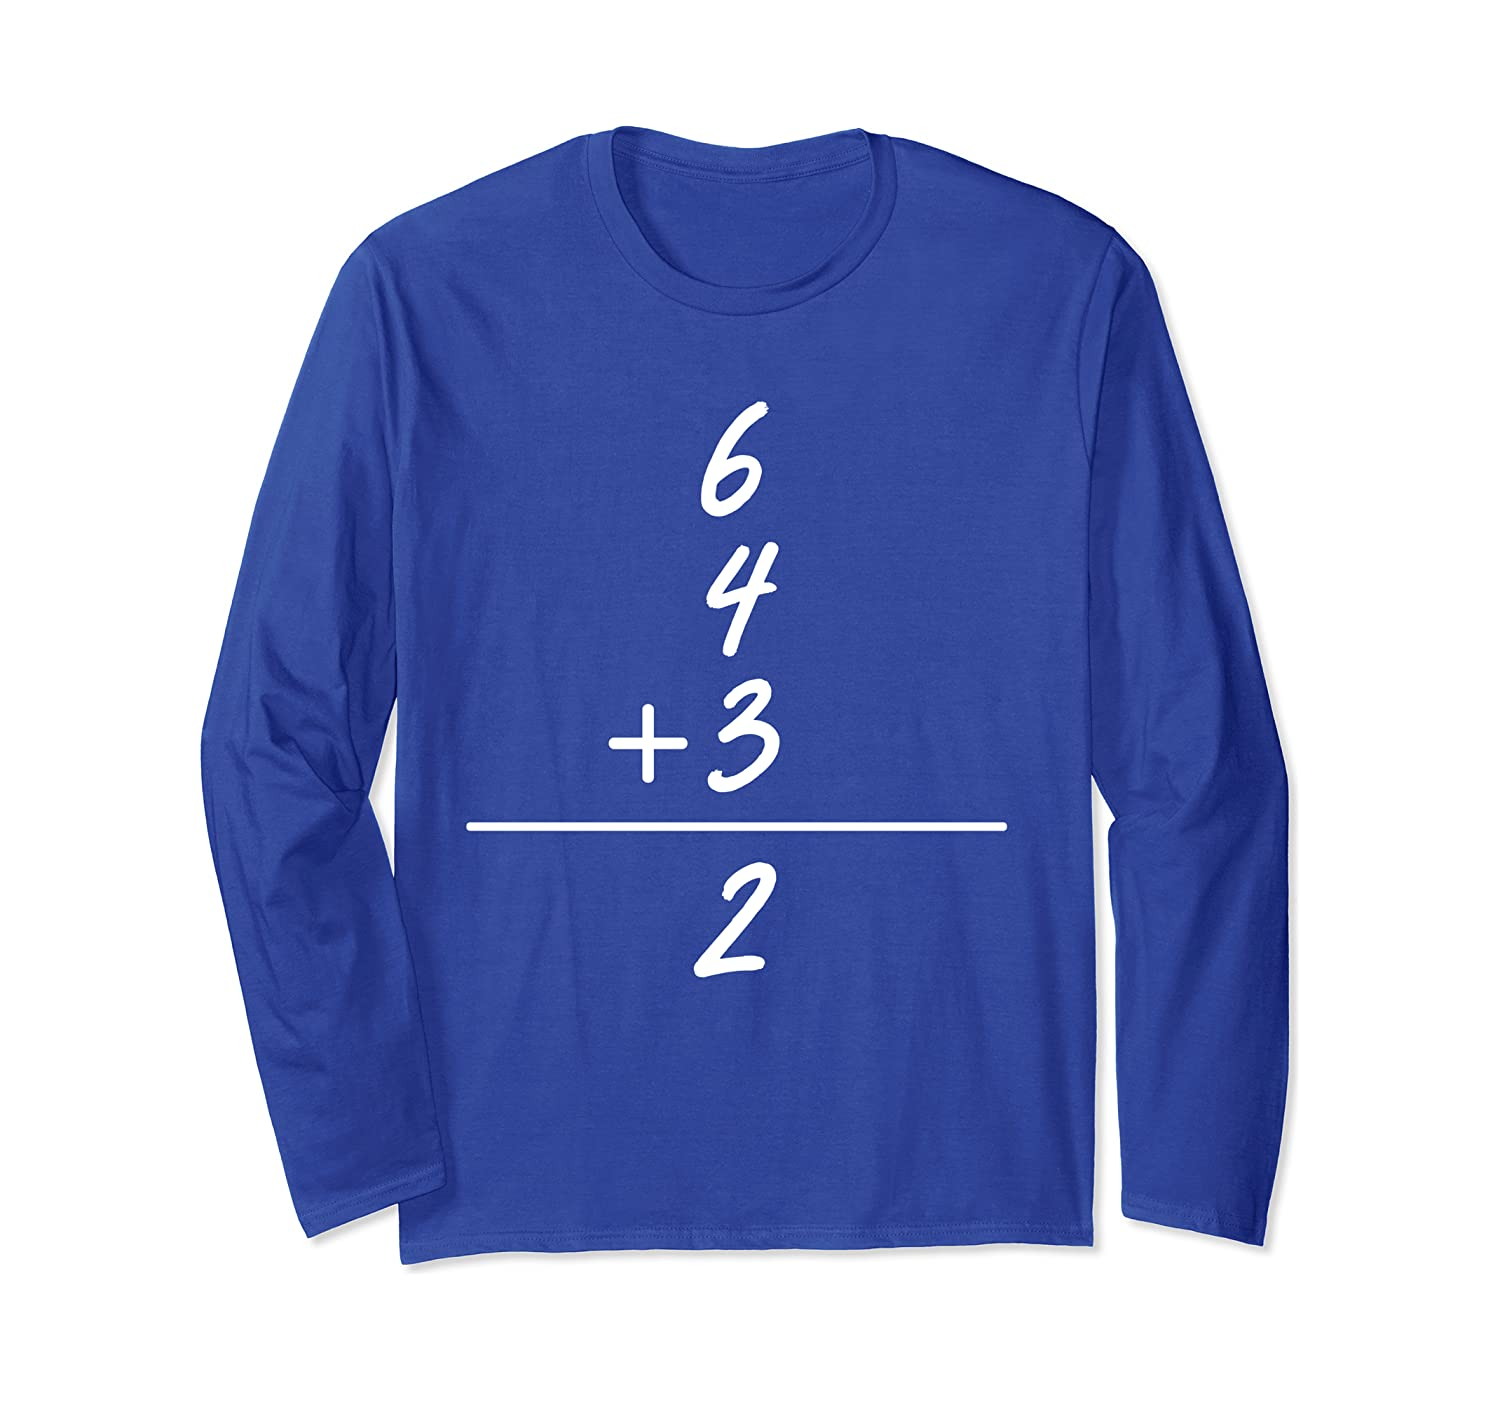 6 4 3 2 Baseball Math Cute Softball Game Gift Long Sleeve T-Shirt